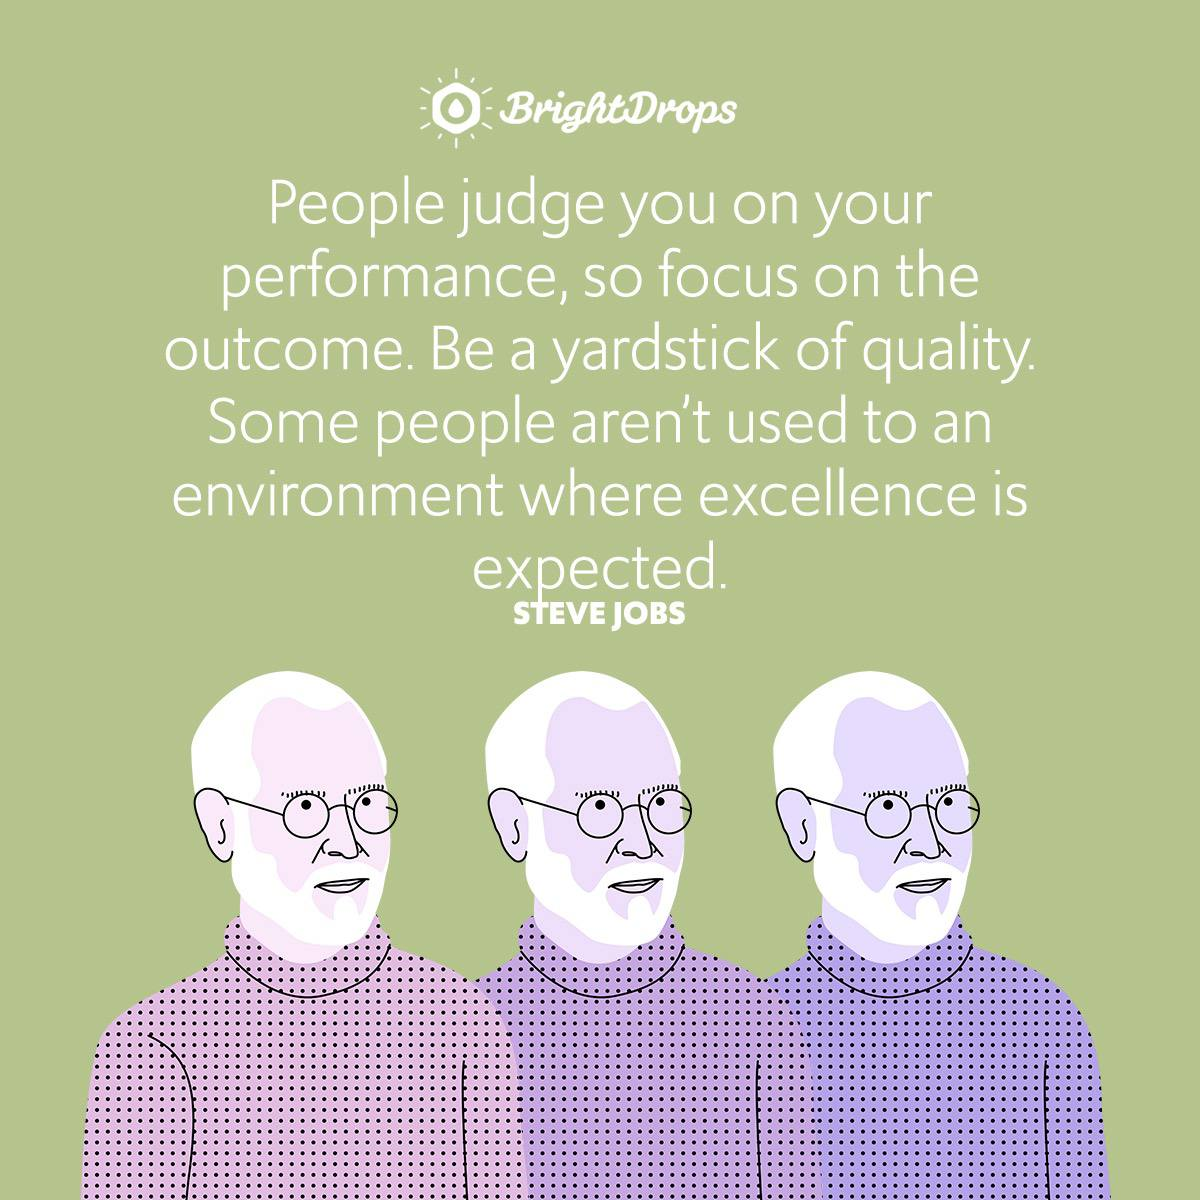 People judge you on your performance, so focus on the outcome. Be a yardstick of quality. Some people aren't used to an environment where excellence is expected.